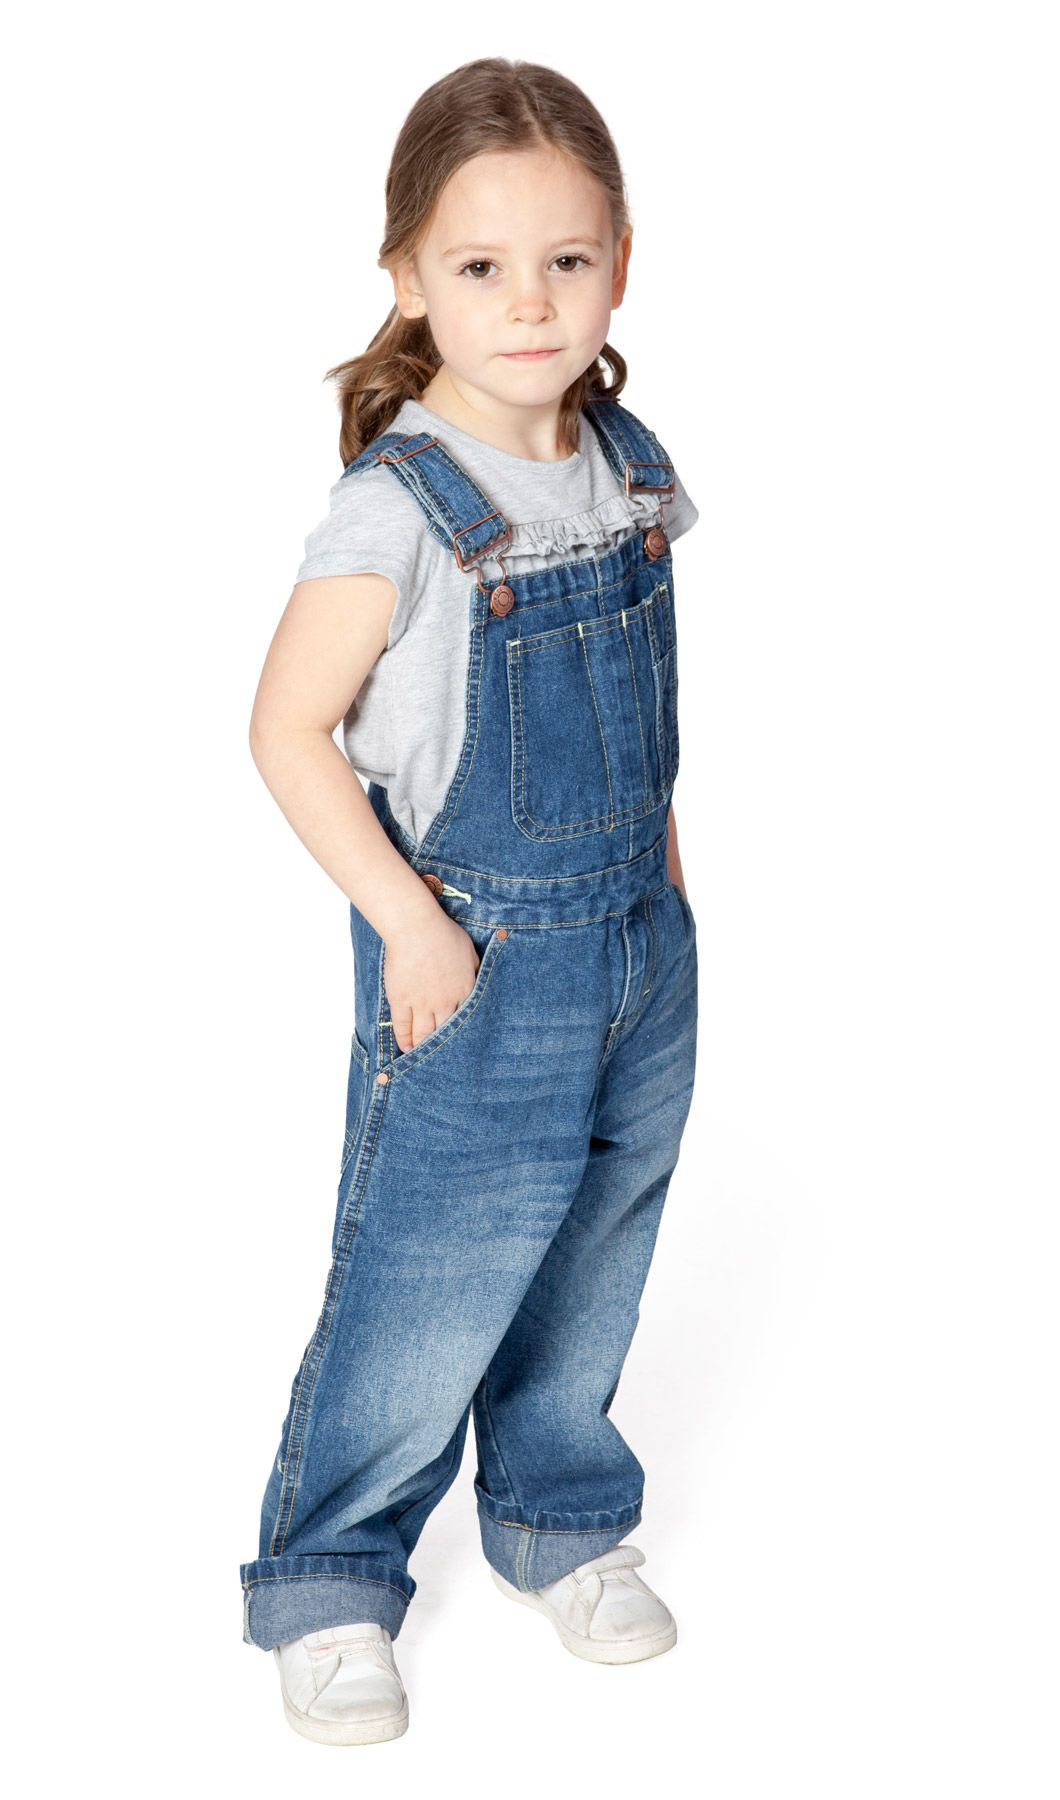 USKEES Girls Dungarees (Stonewash) Age 4-8 Could be used ...